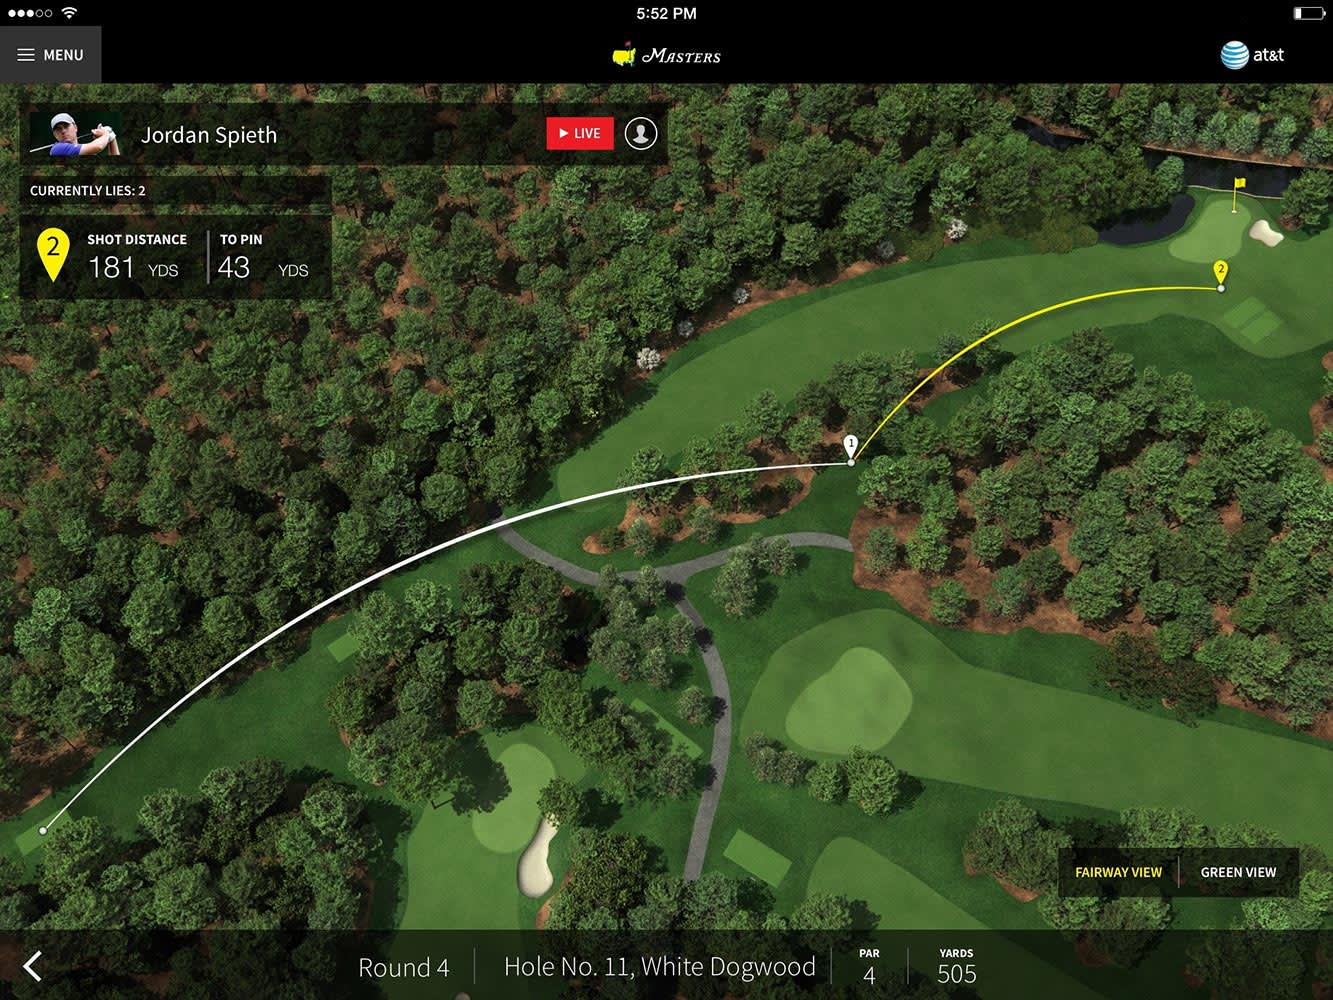 The Masters App